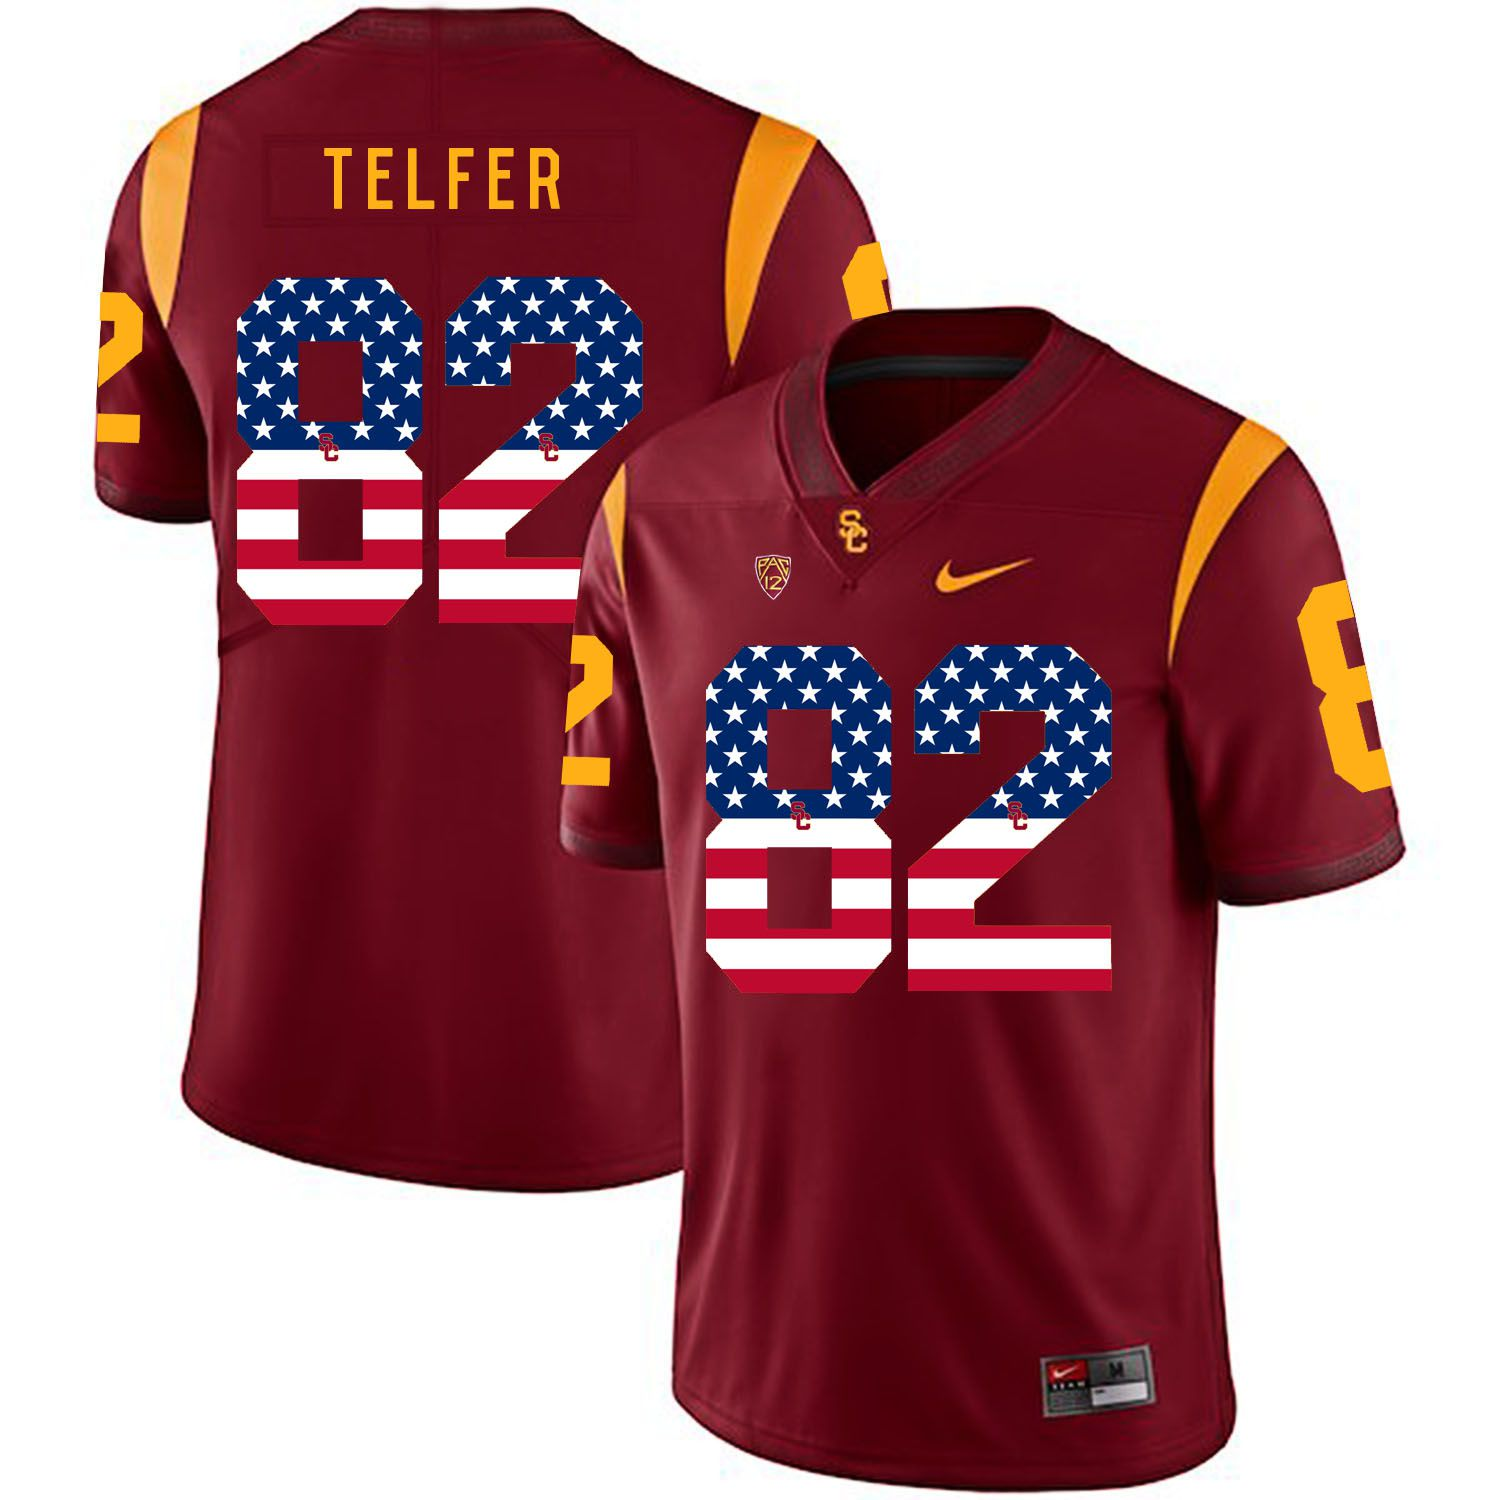 Men USC Trojans 82 Telfer Red Flag Customized NCAA Jerseys